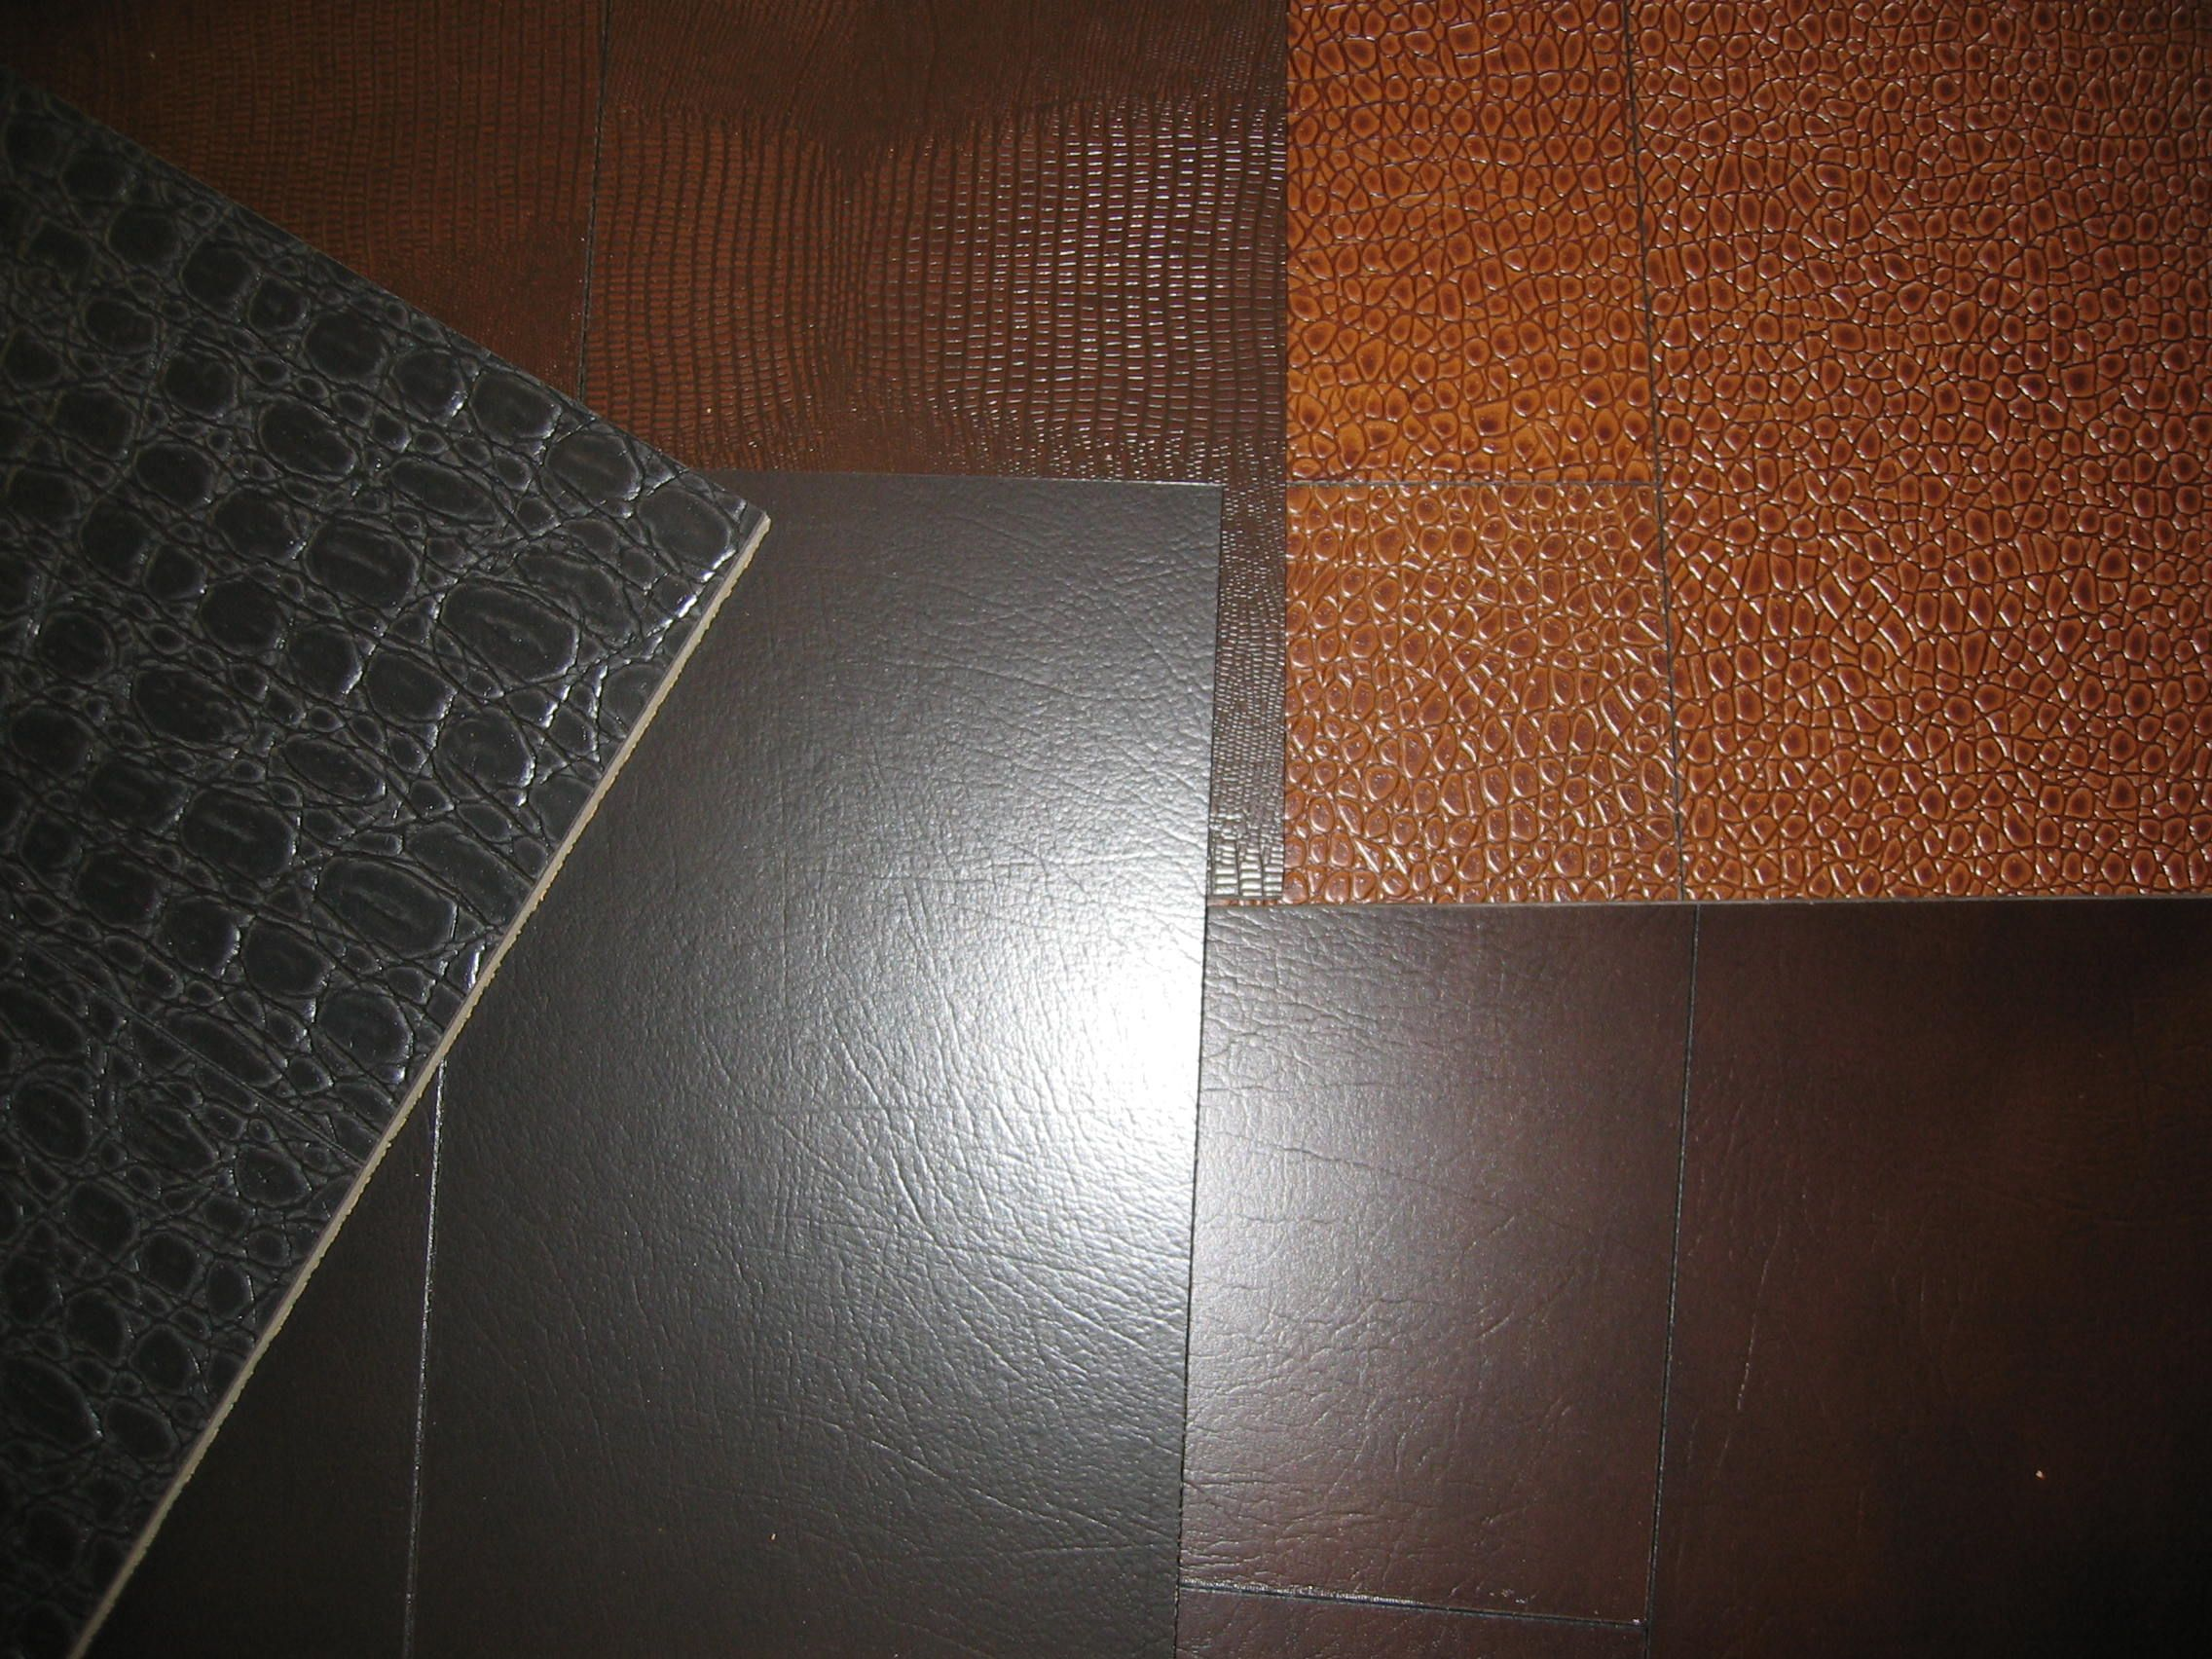 Leather floor tiles leather floor tiles kitchen pinterest leather floor tiles leather floor tiles flooring dailygadgetfo Gallery